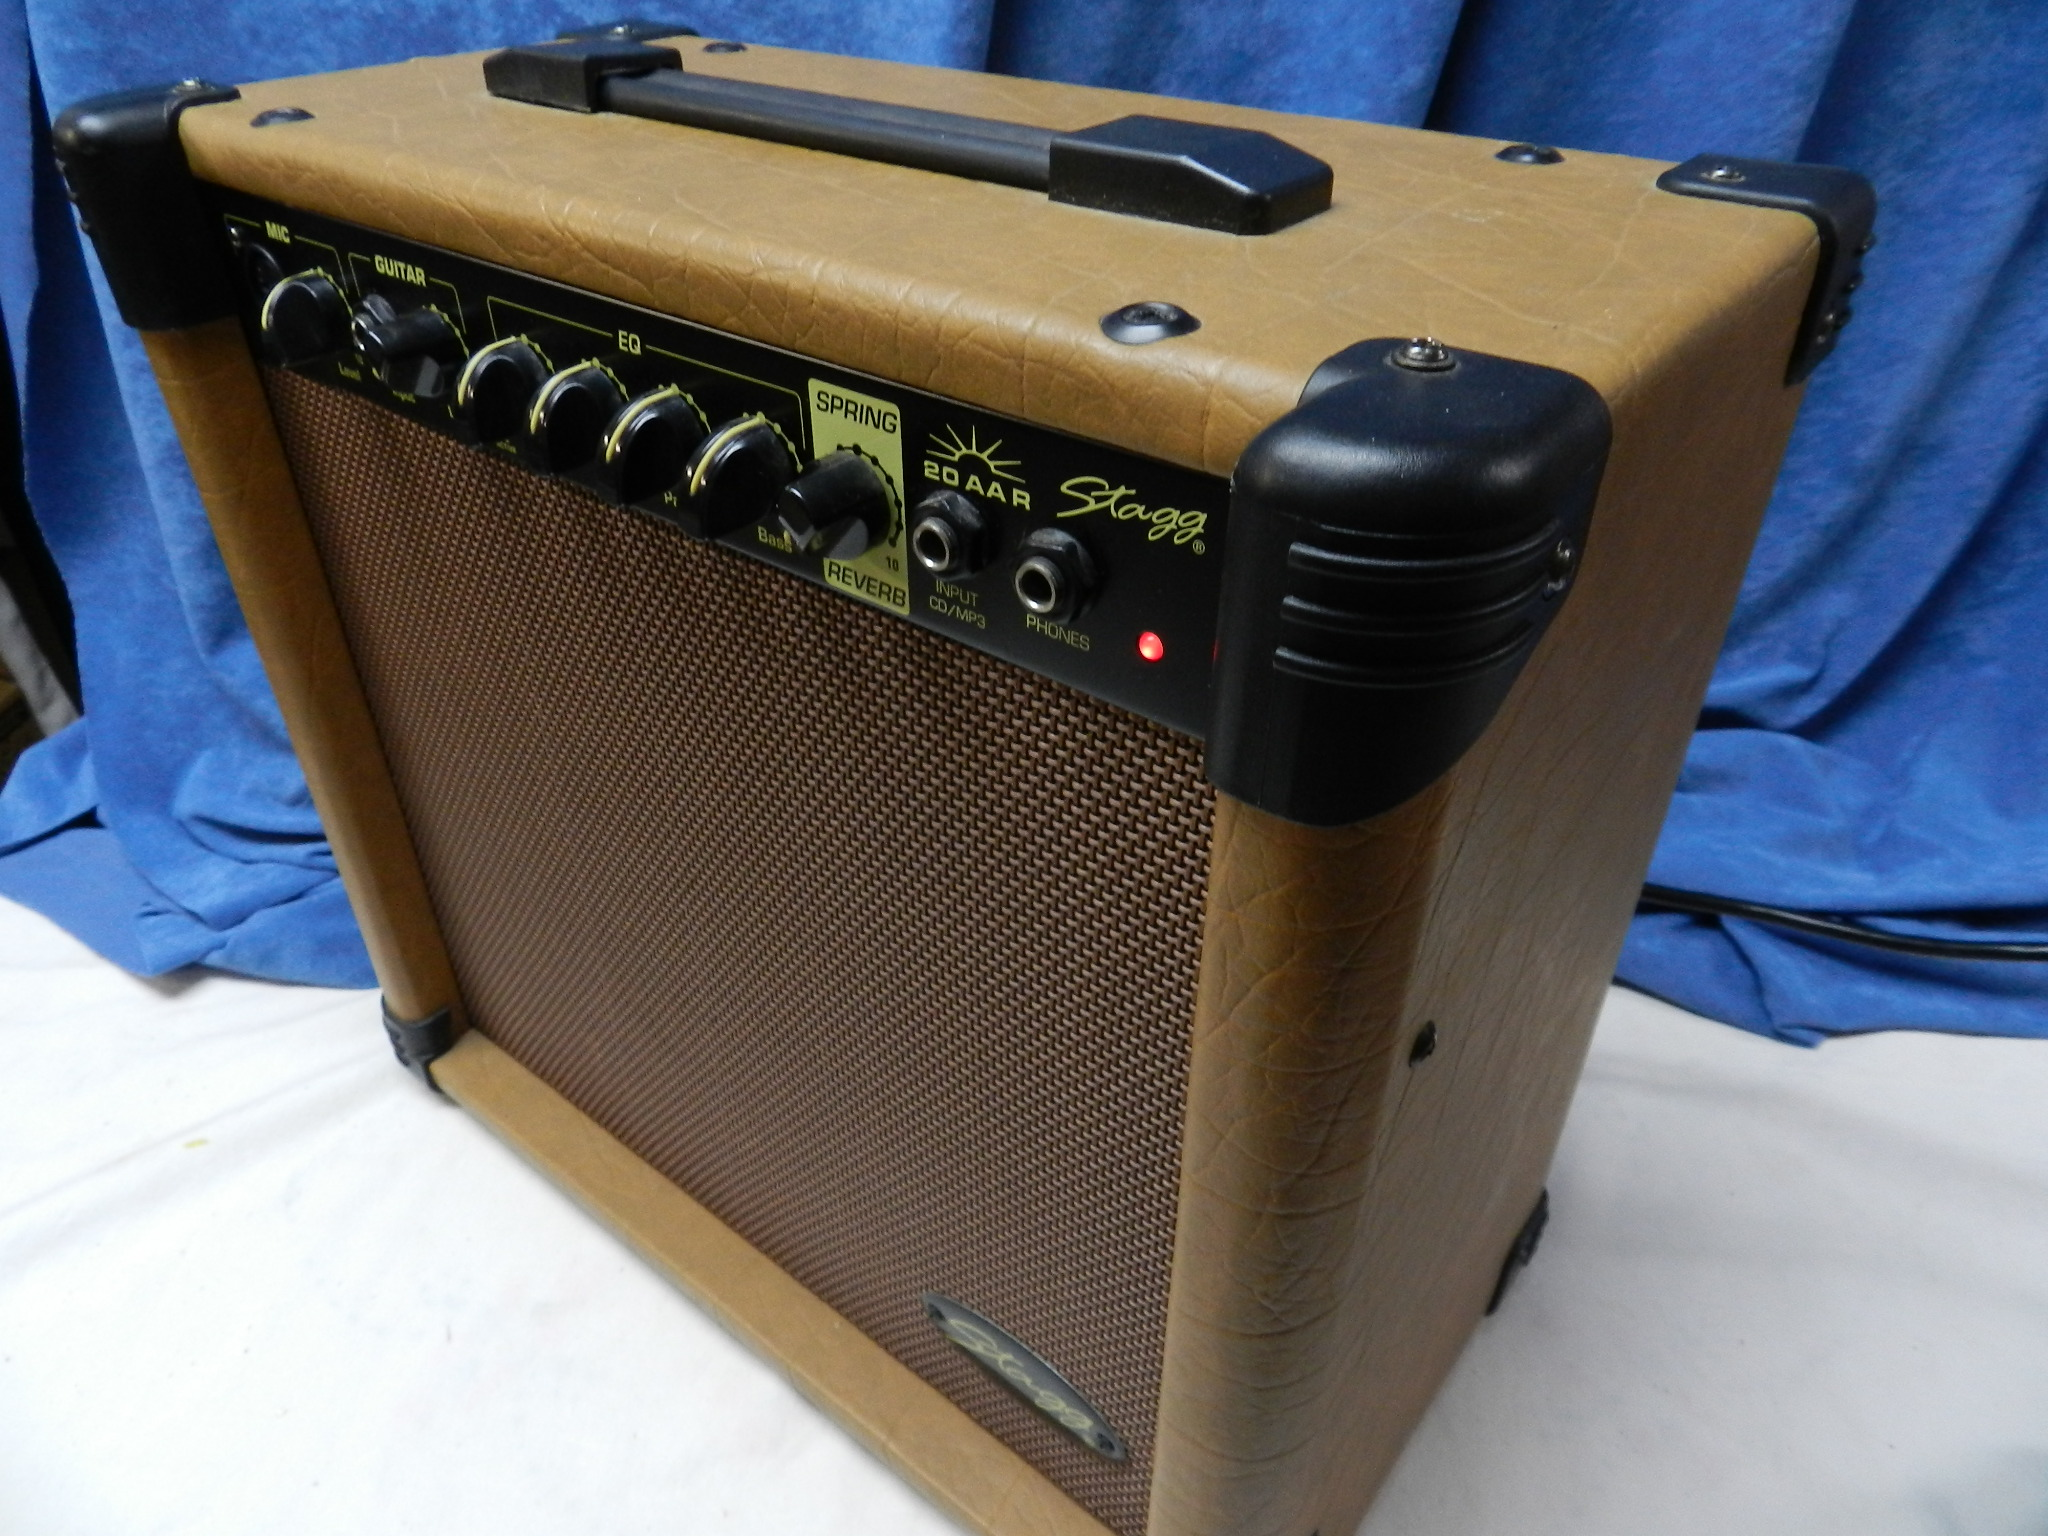 $133 - Stagg 20AAR Acoustic Guitar Amplifier w/Spring Reverb